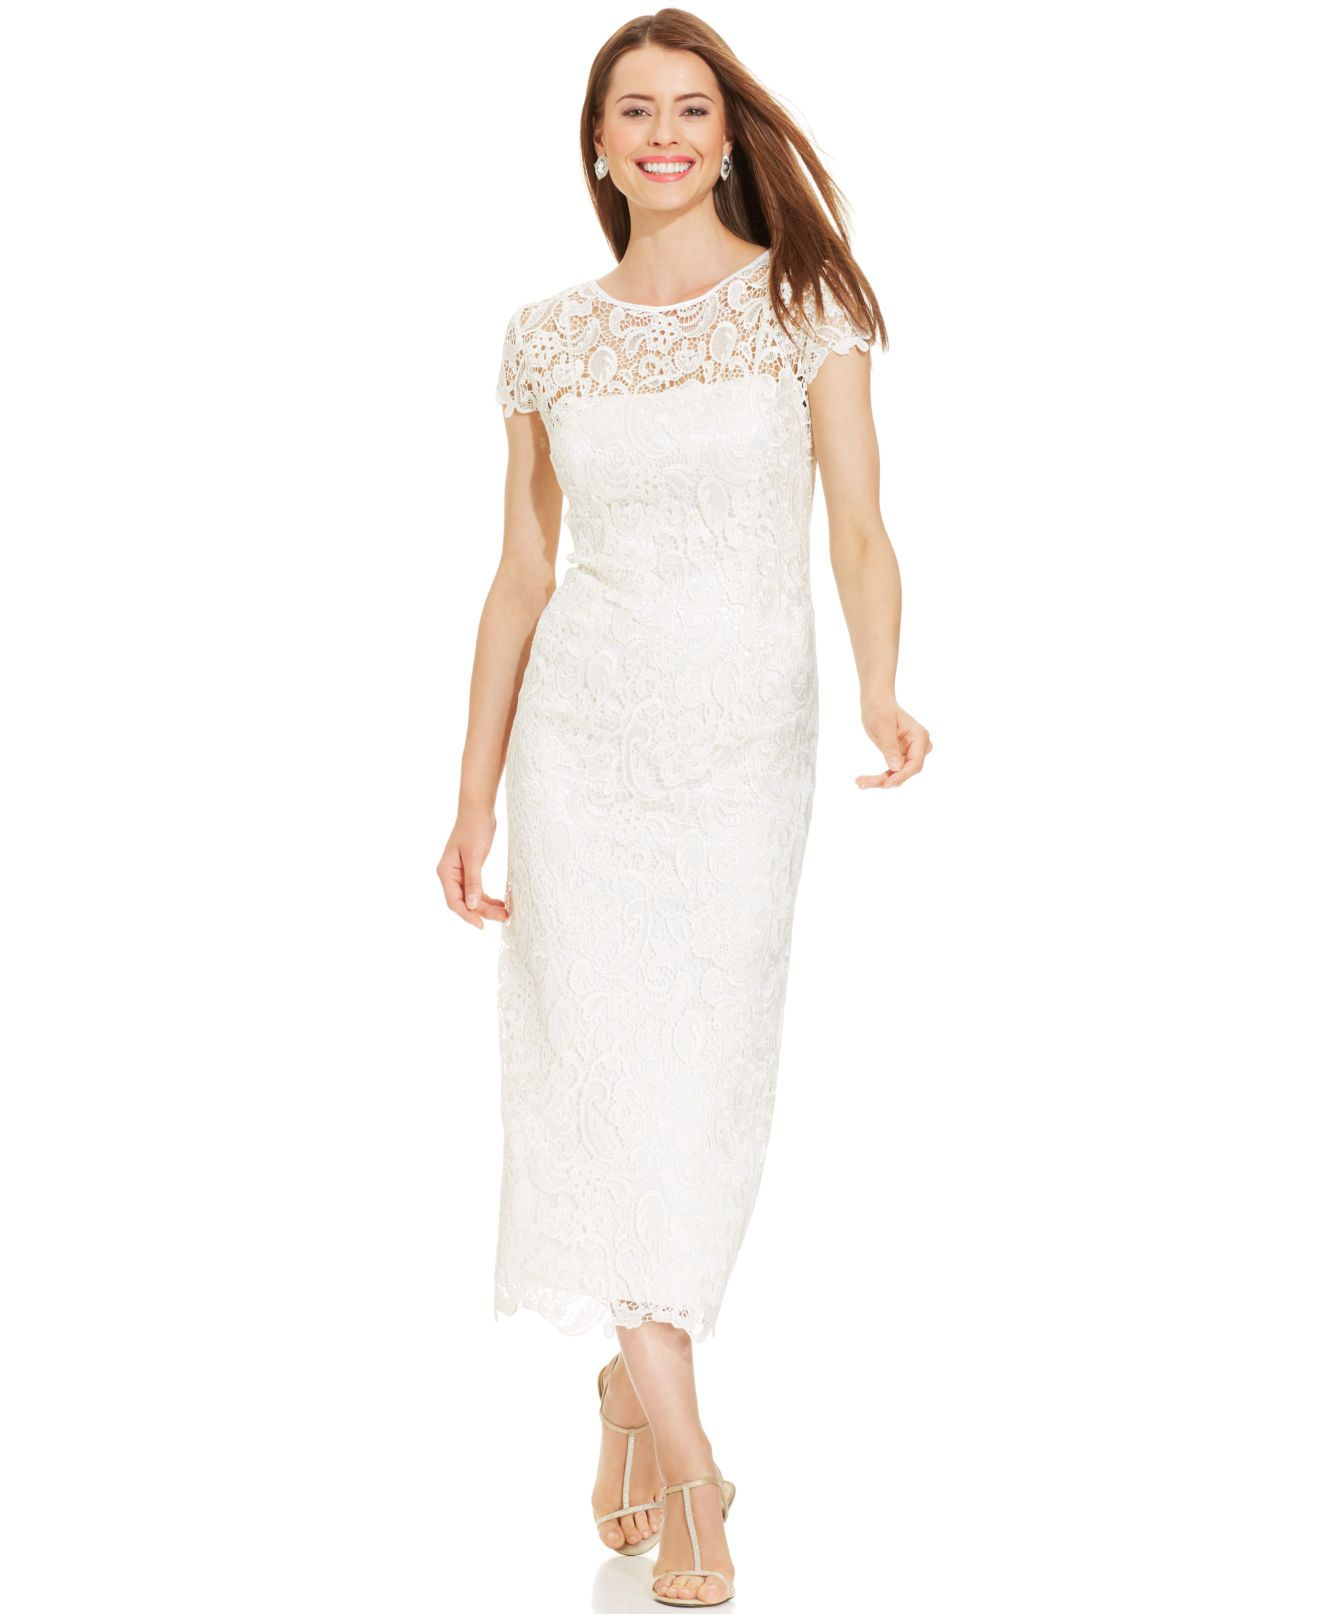 Patra Illusion Lace Tea-Length Dress in White | Lyst